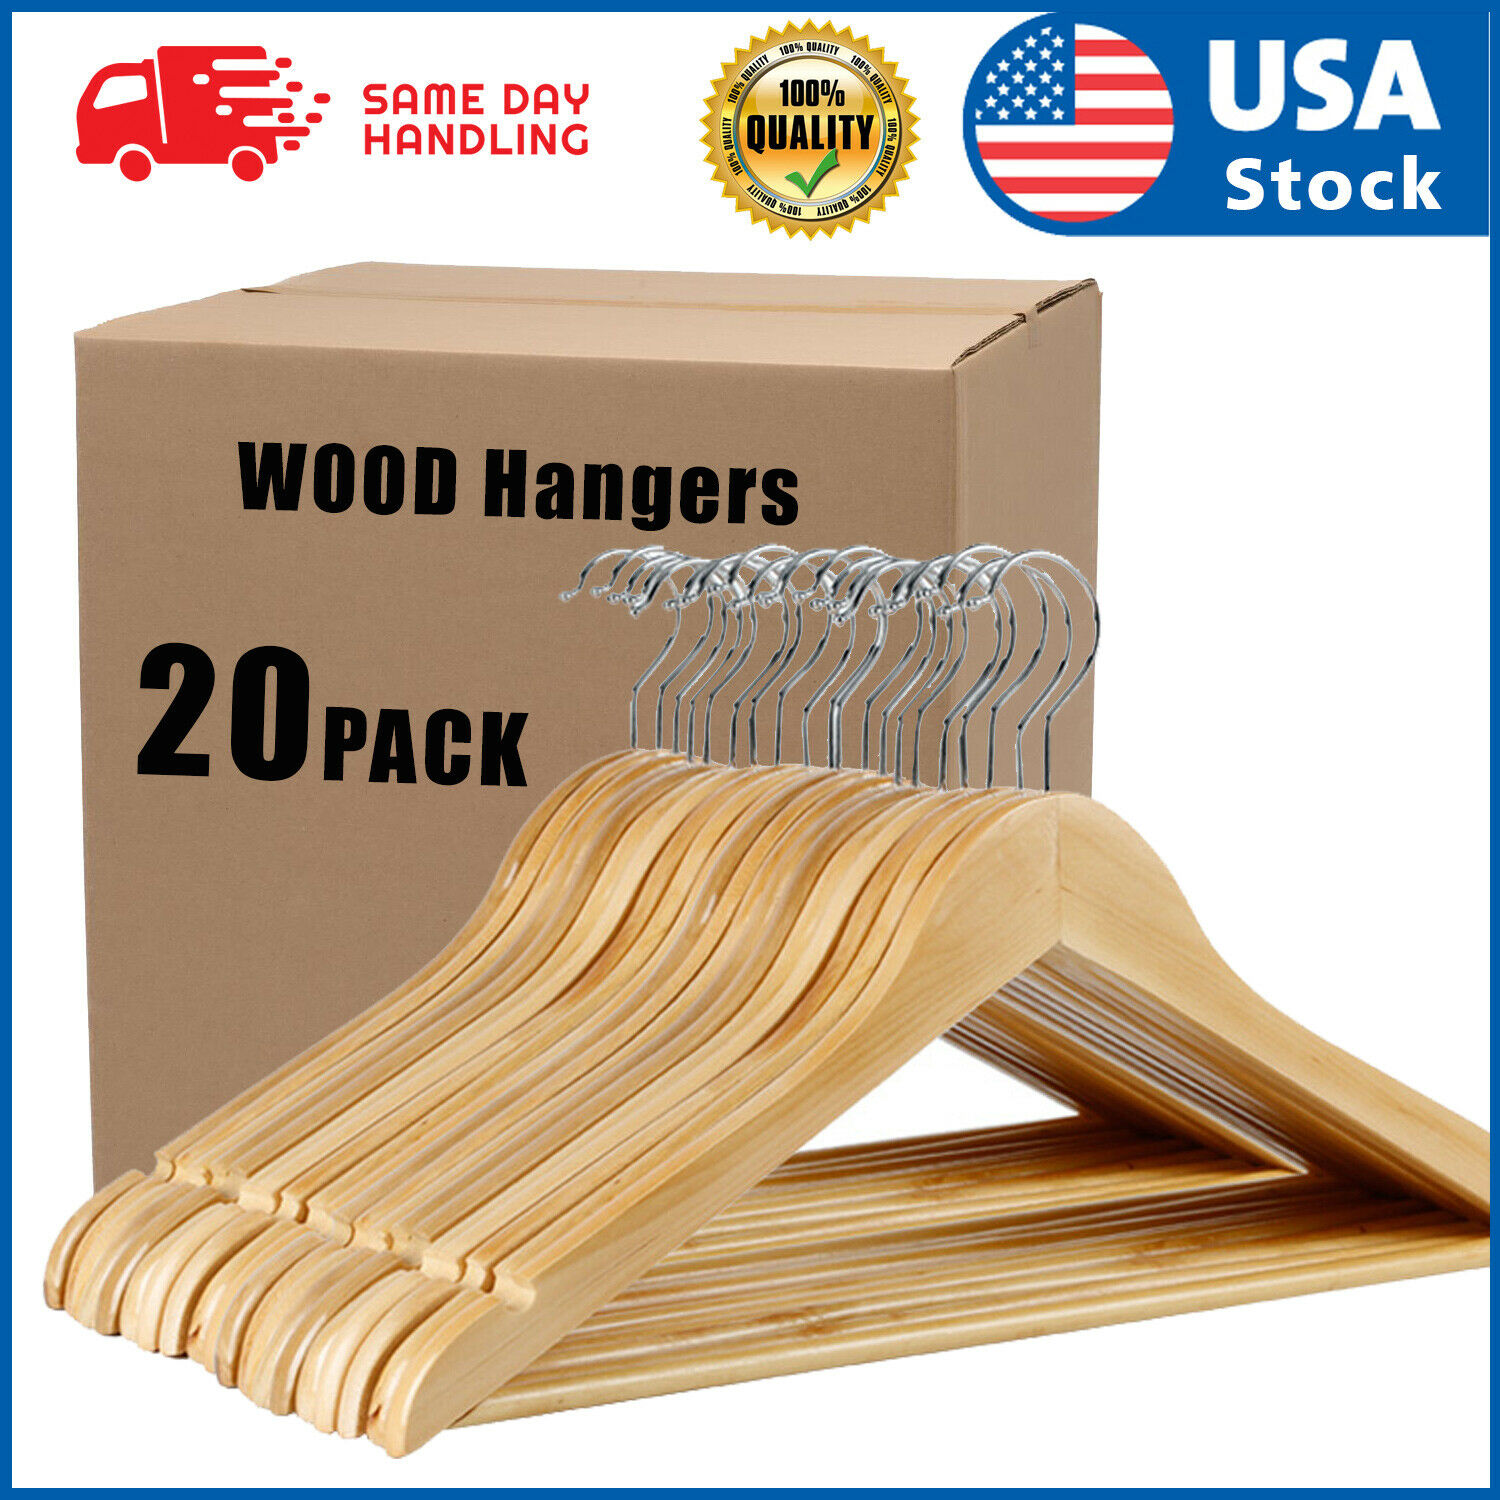 USA 20PACK Wooden Hangers Suit Hangers Premium Natural Finish Utopia Home Clothes Hangers